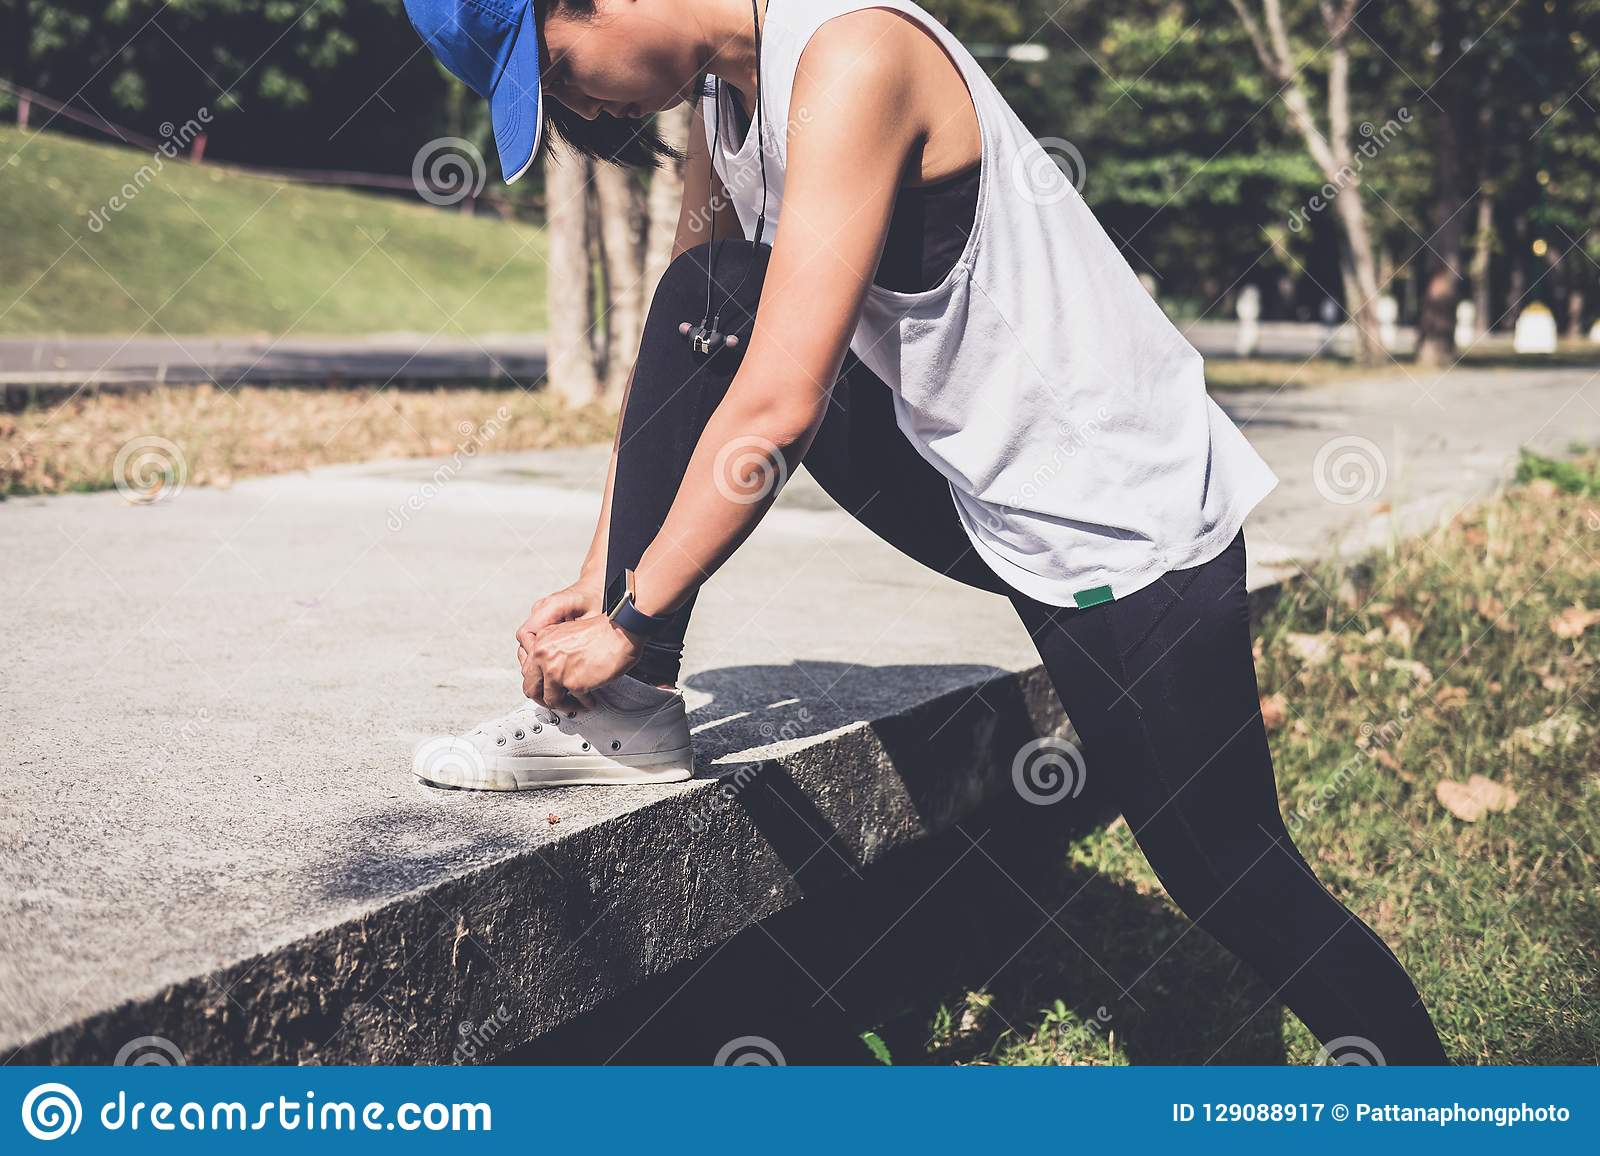 Healthy lifestyle, Runner tying running shoes getting ready for